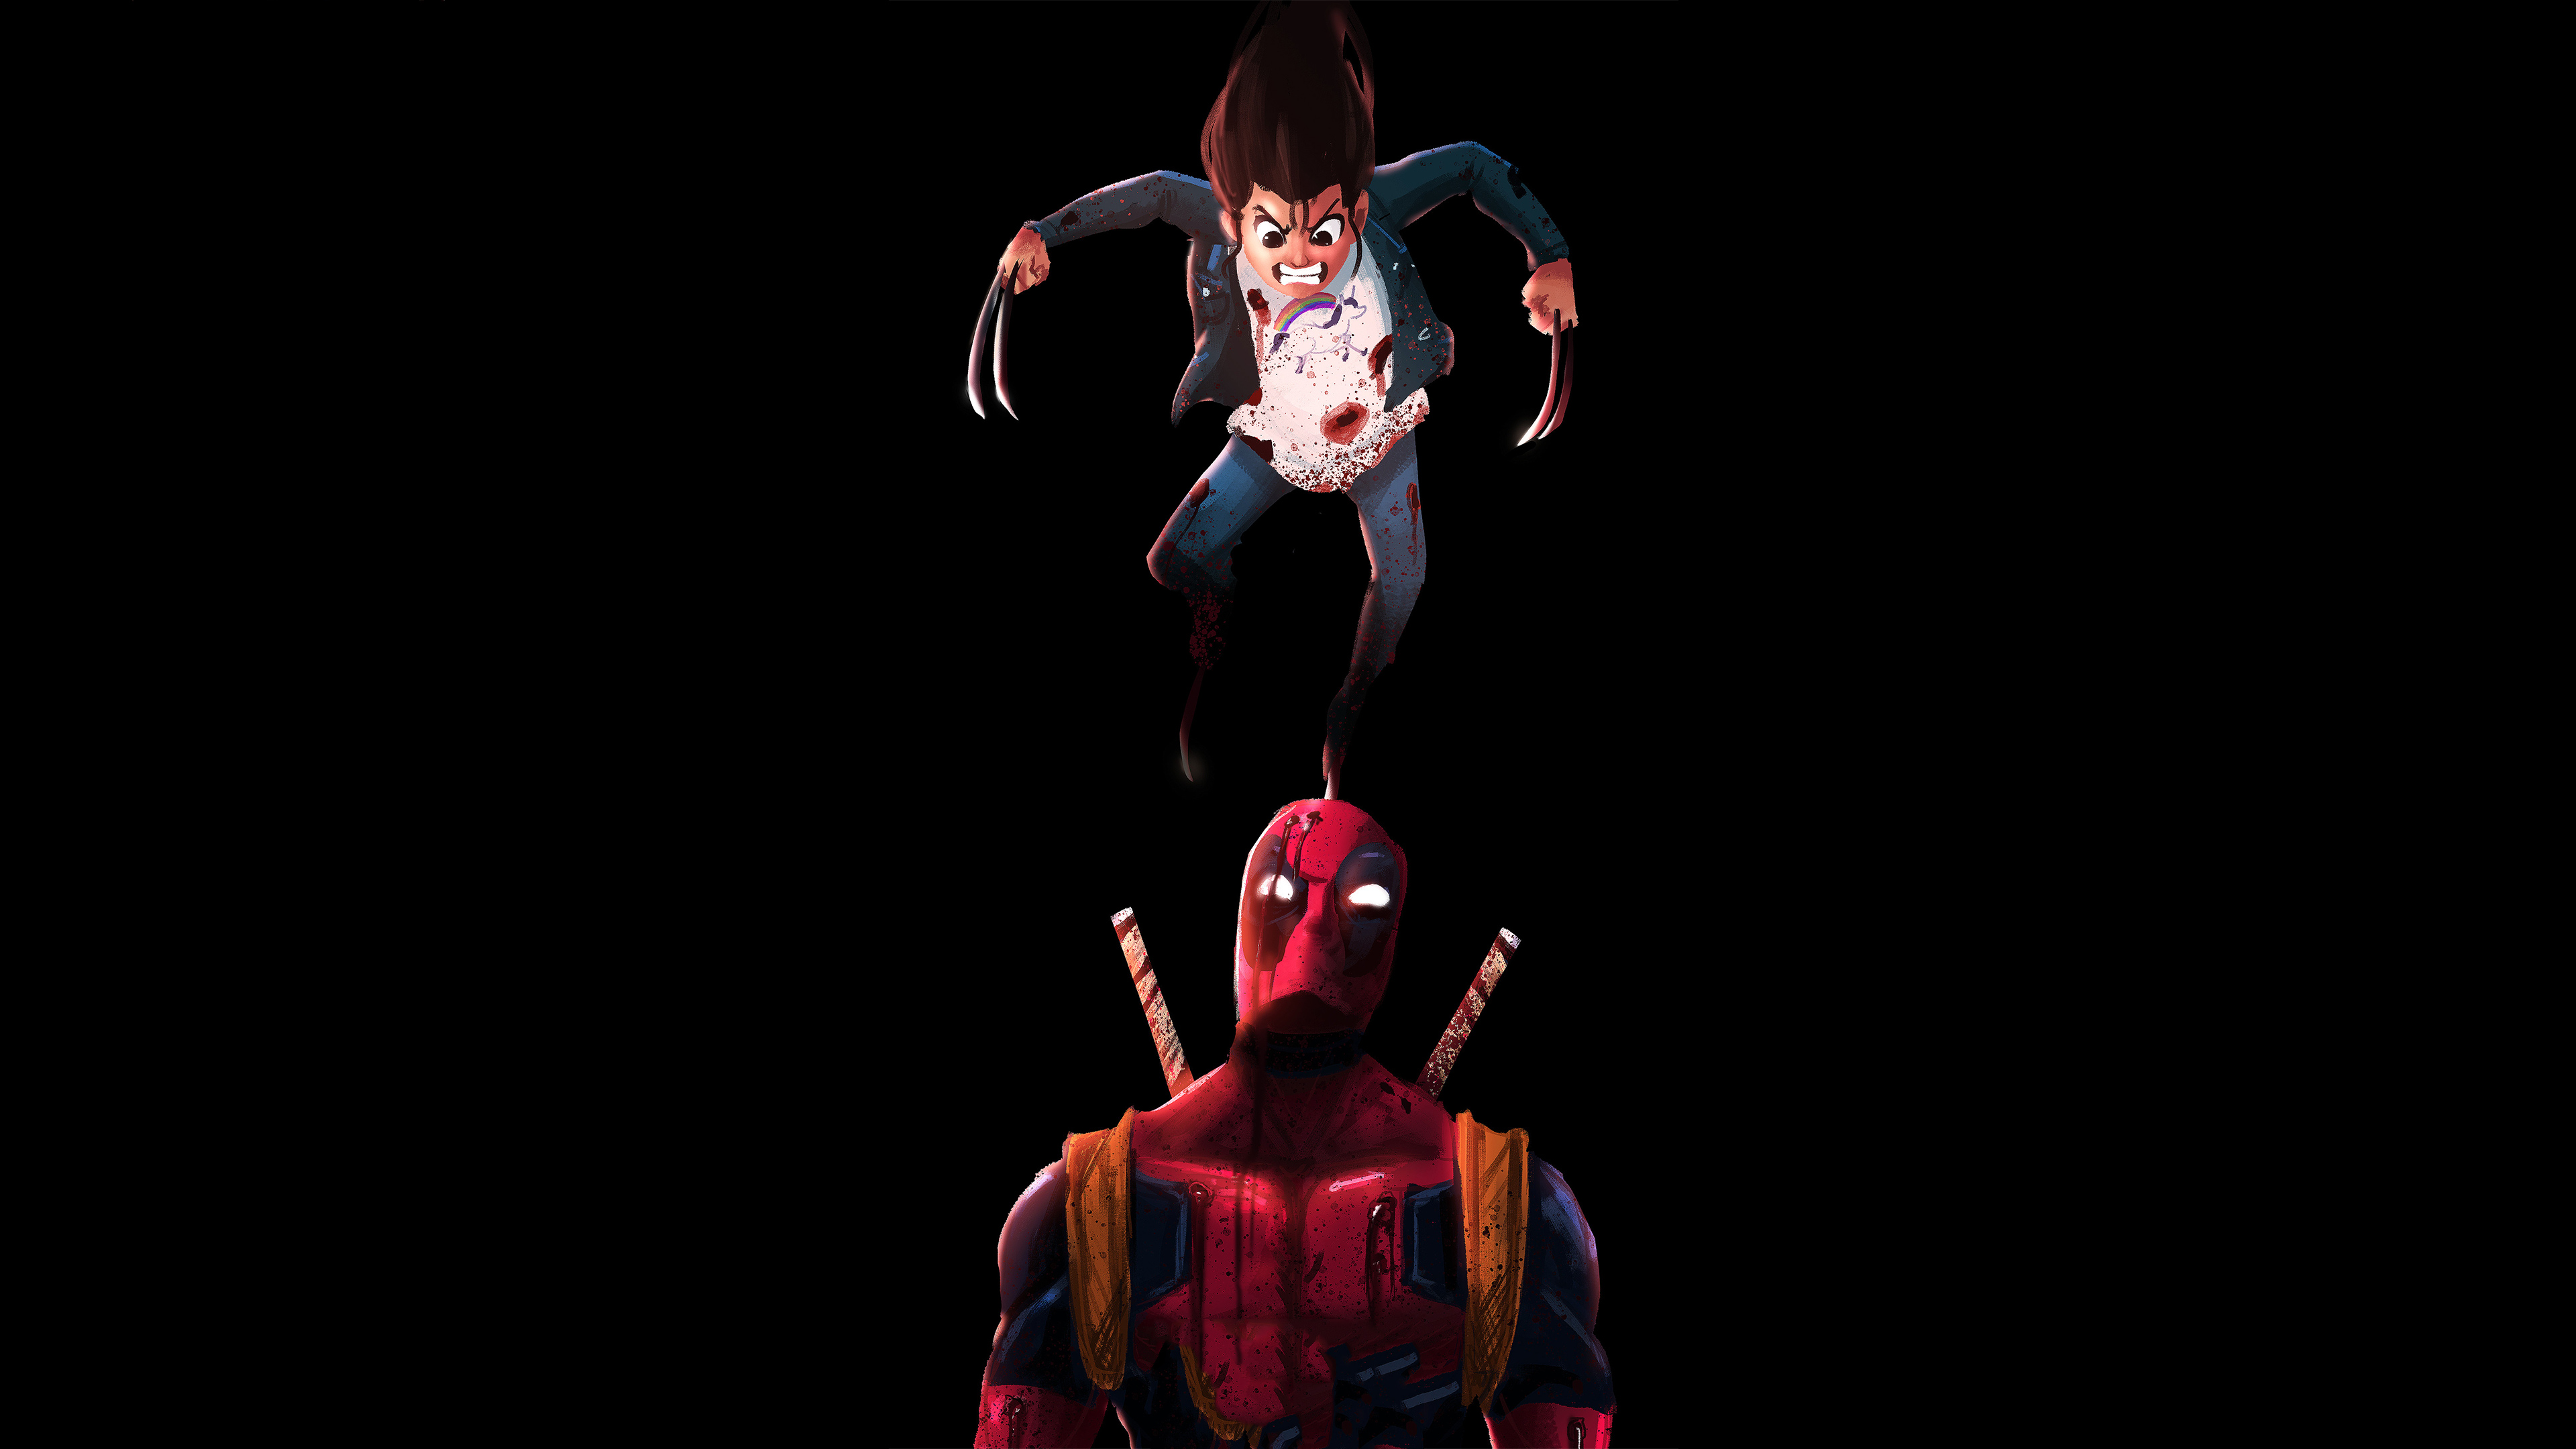 deadpool and x23 1570918463 - Deadpool And X23 - x23 wallpapers, superheroes wallpapers, hd-wallpapers, digital art wallpapers, deadpool wallpapers, artwork wallpapers, artstation wallpapers, artist wallpapers, 4k-wallpapers